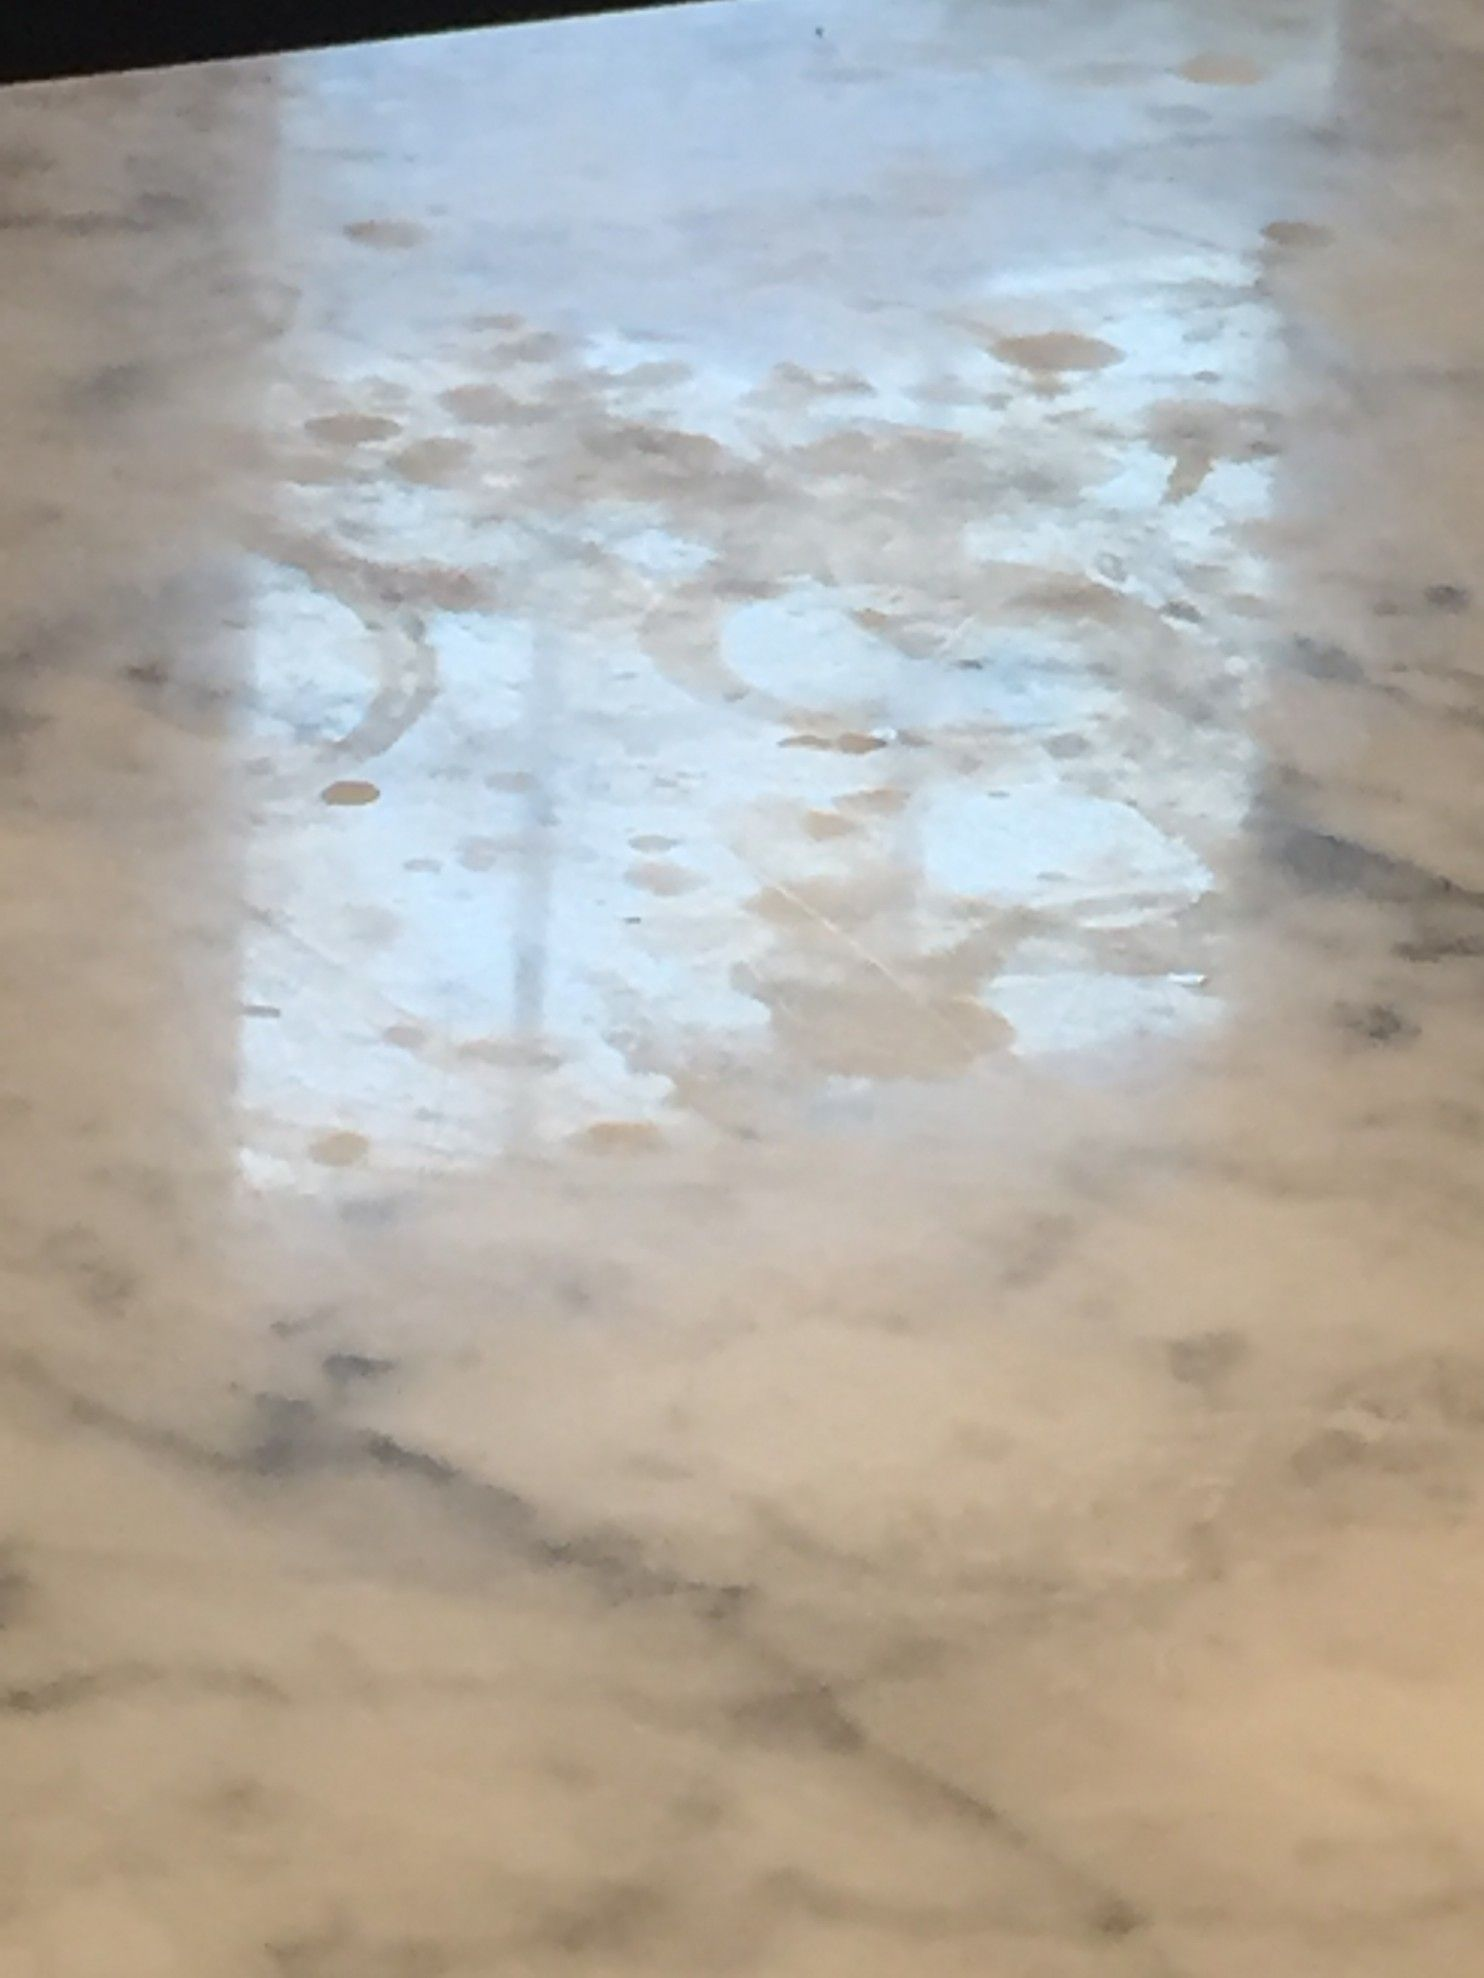 How To Get Rid Of Marks On Marble Cleaning Marble Floors